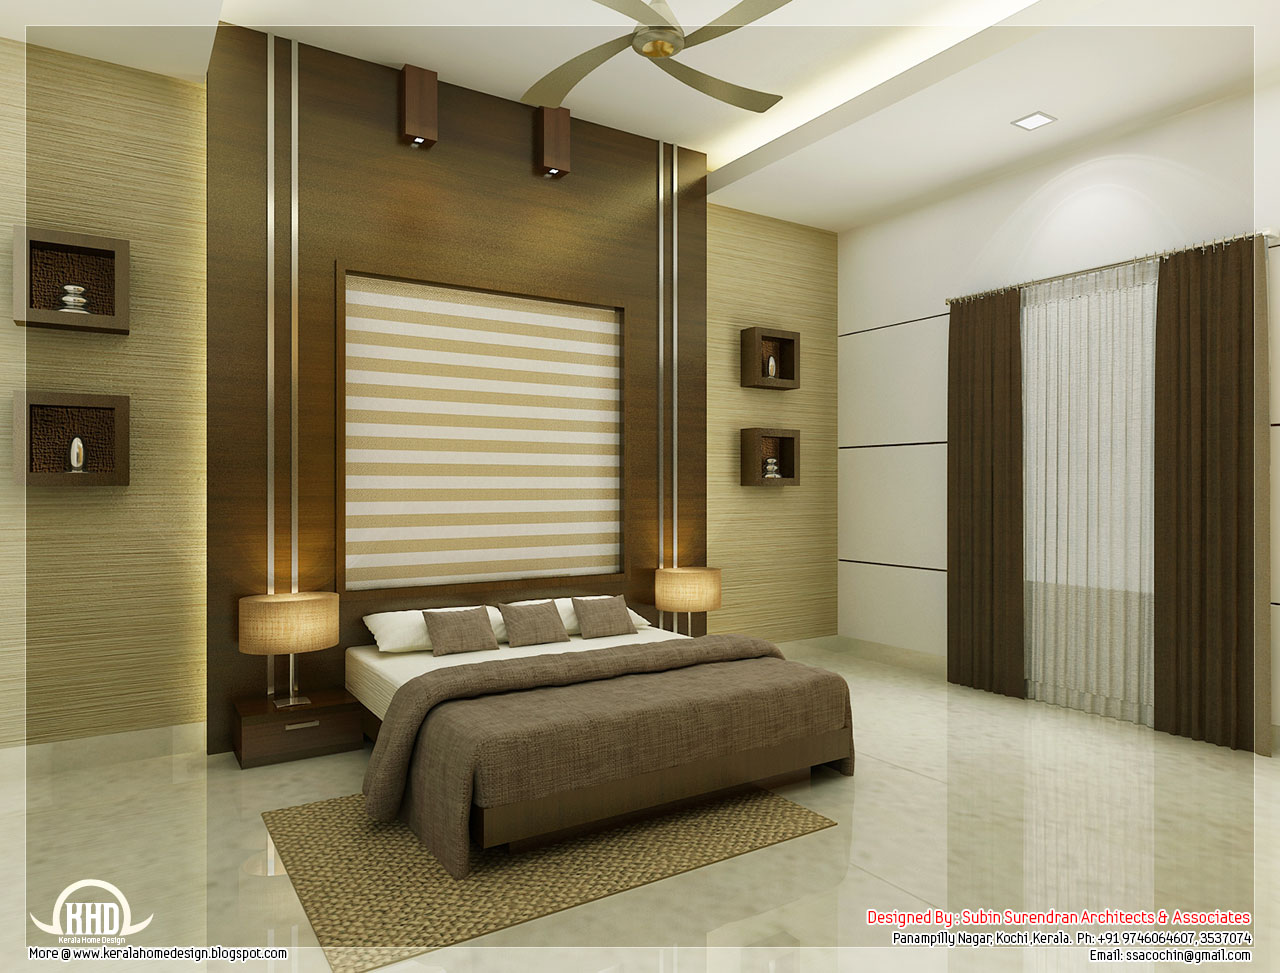 Beautiful bedroom interior designs kerala home design and floor plans - Bedroom interior design ideas ...